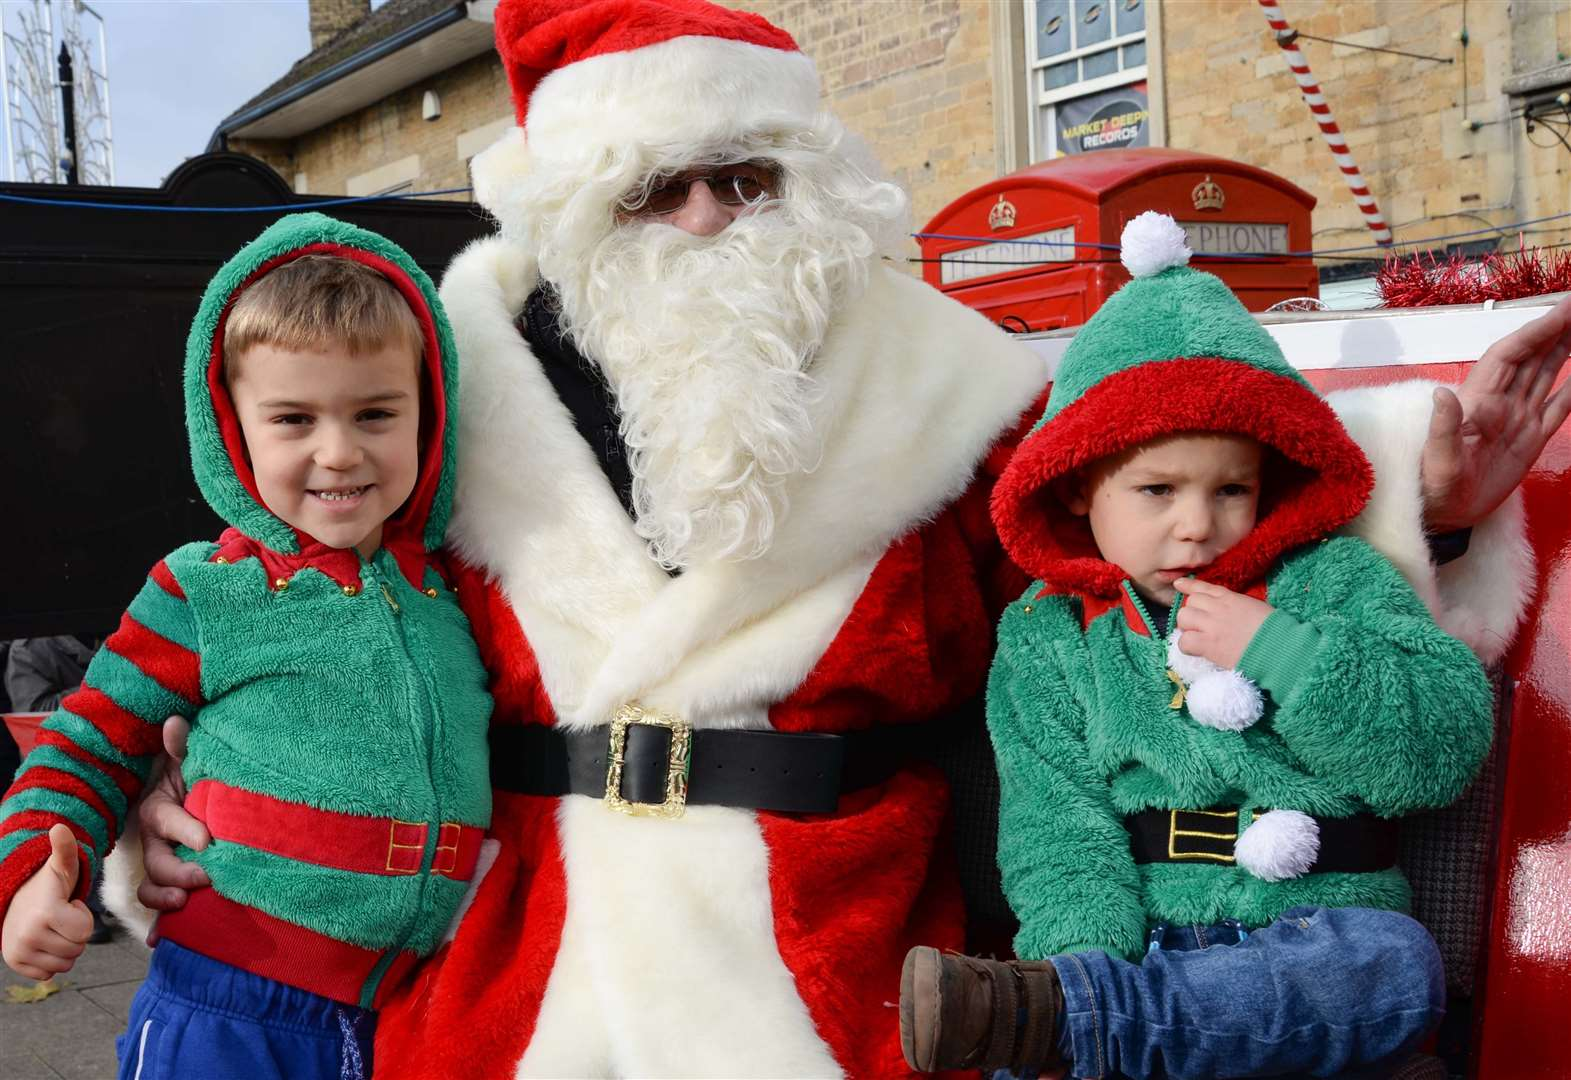 Market Deeping Christmas Market offers something of all the family on Sunday